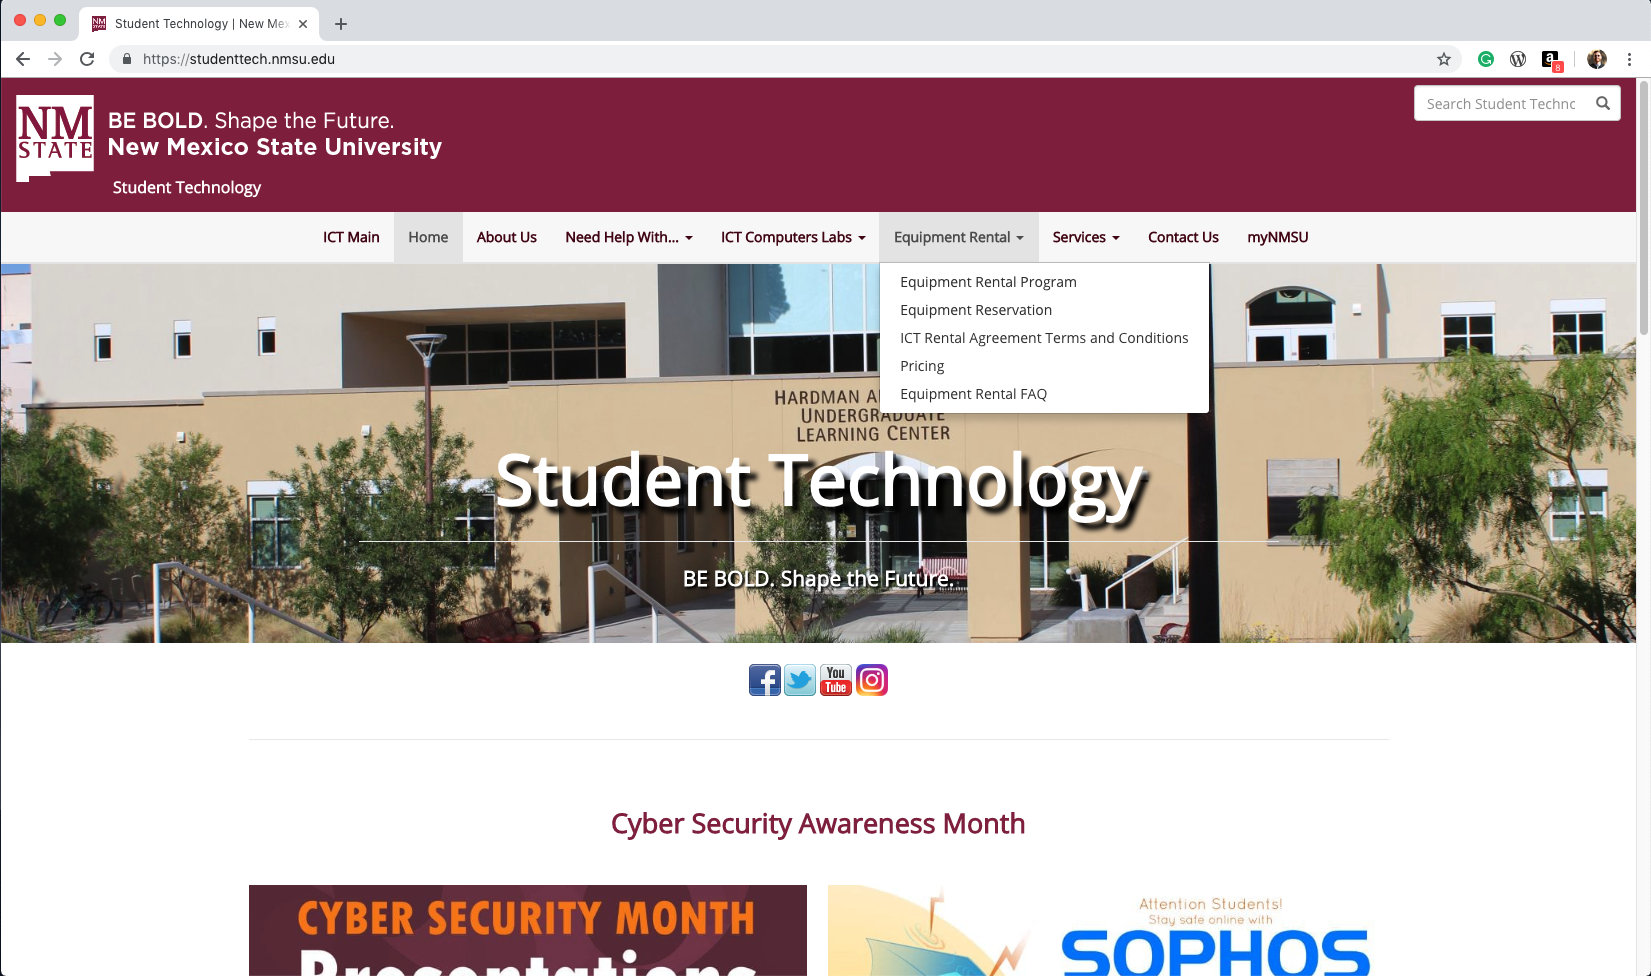 student technology homepage